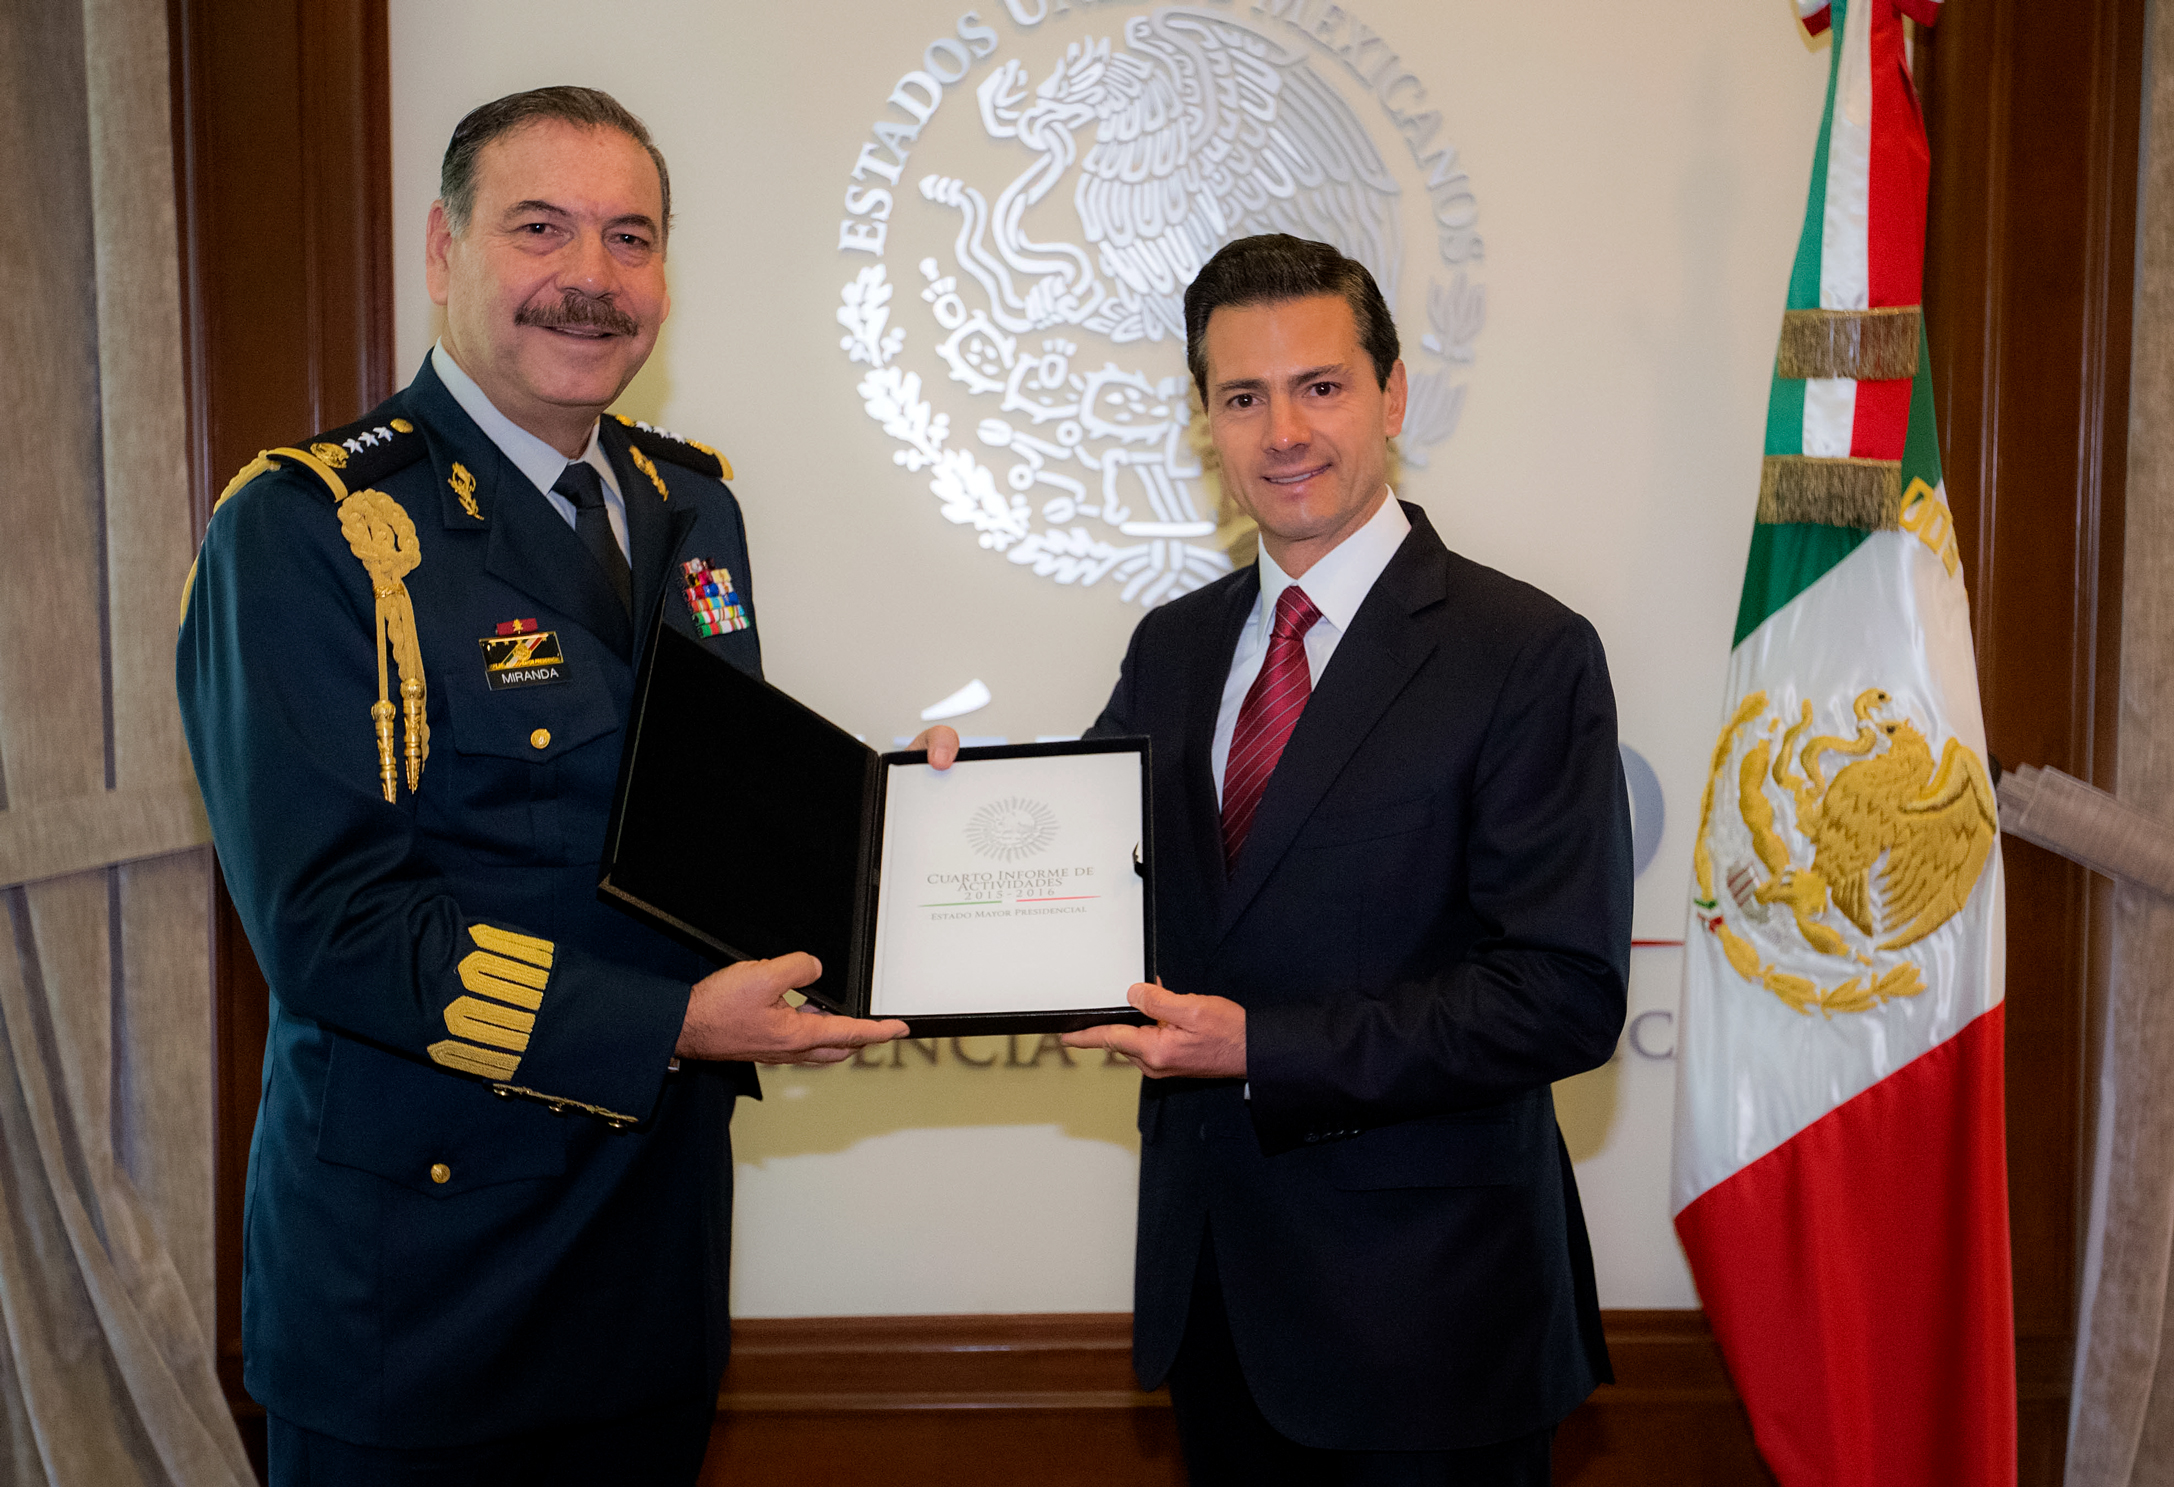 The Head of the Presidential General Staff submitted his Fourth Activities Report 2015-2016